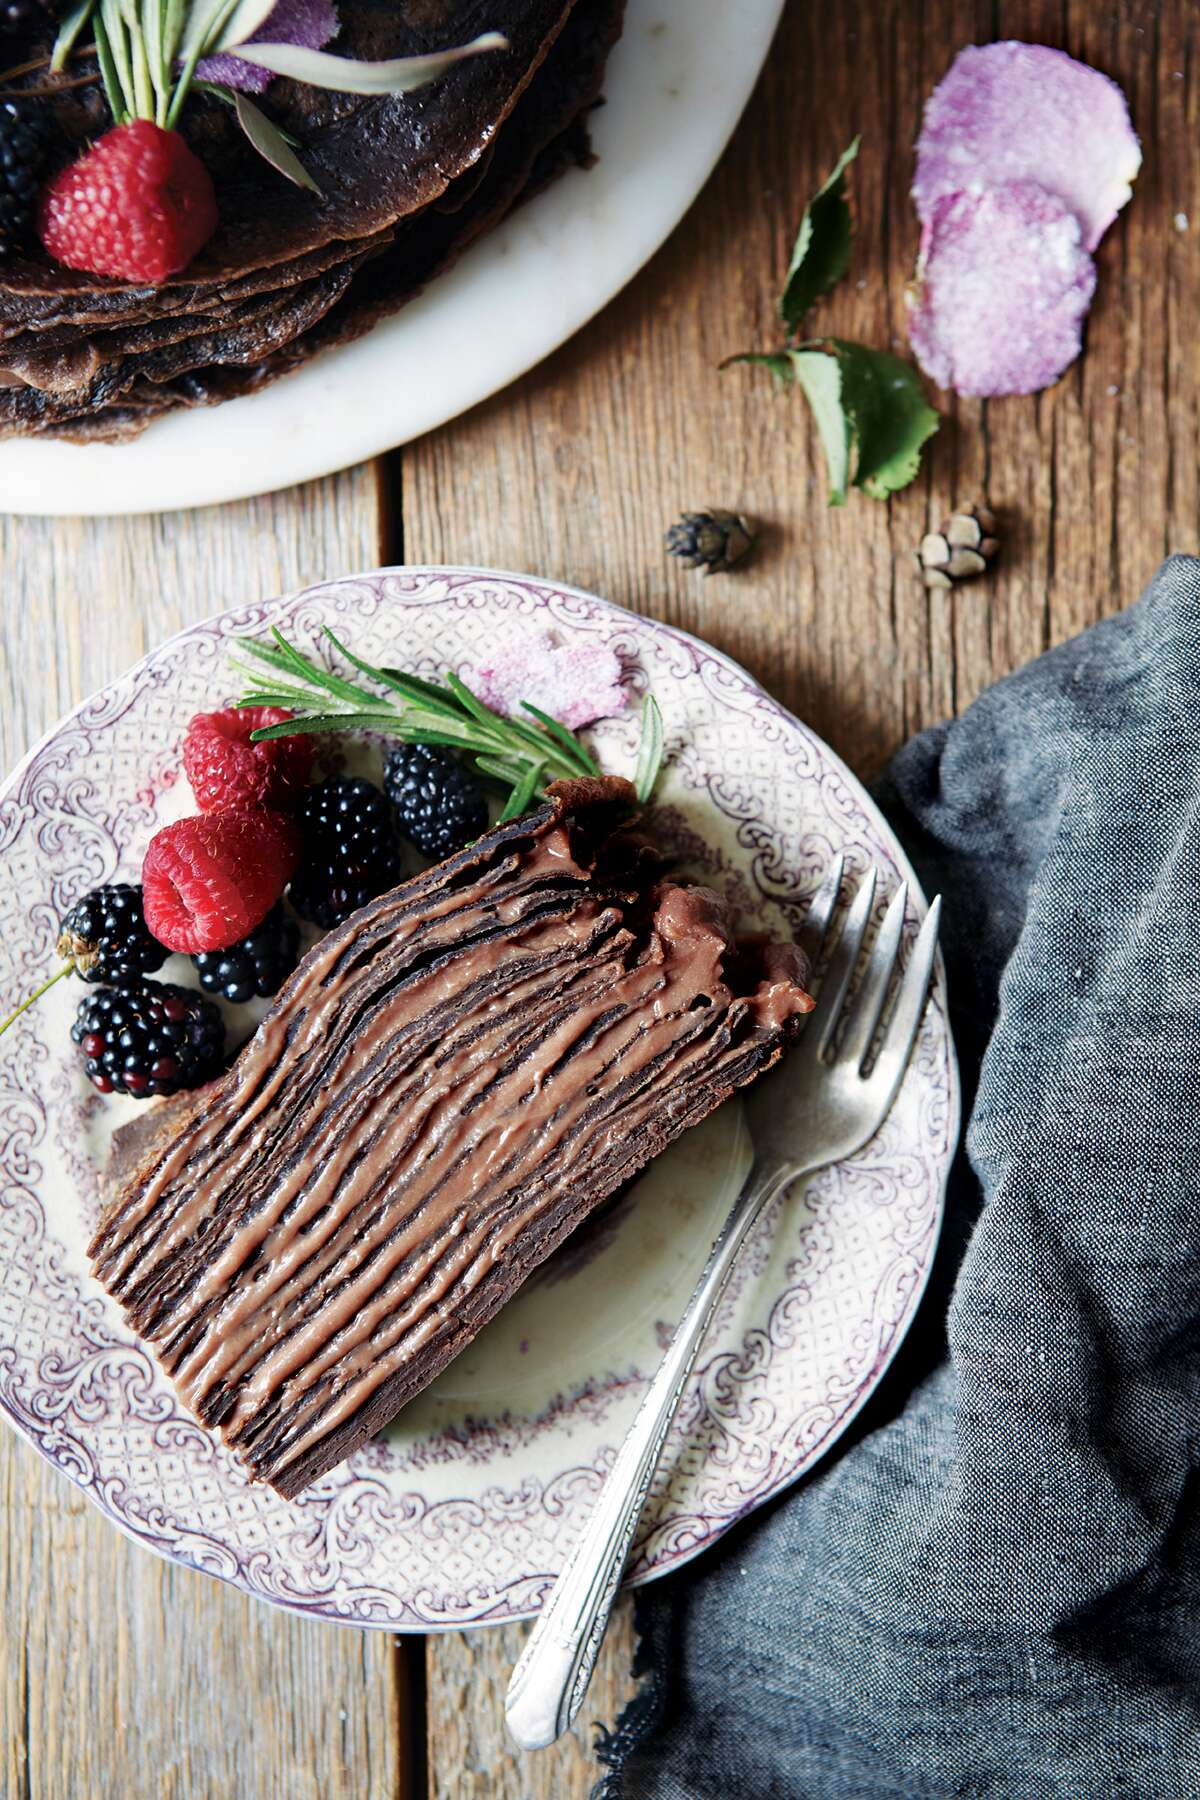 creative crêpe recipes chocolate via@kingarthurflour